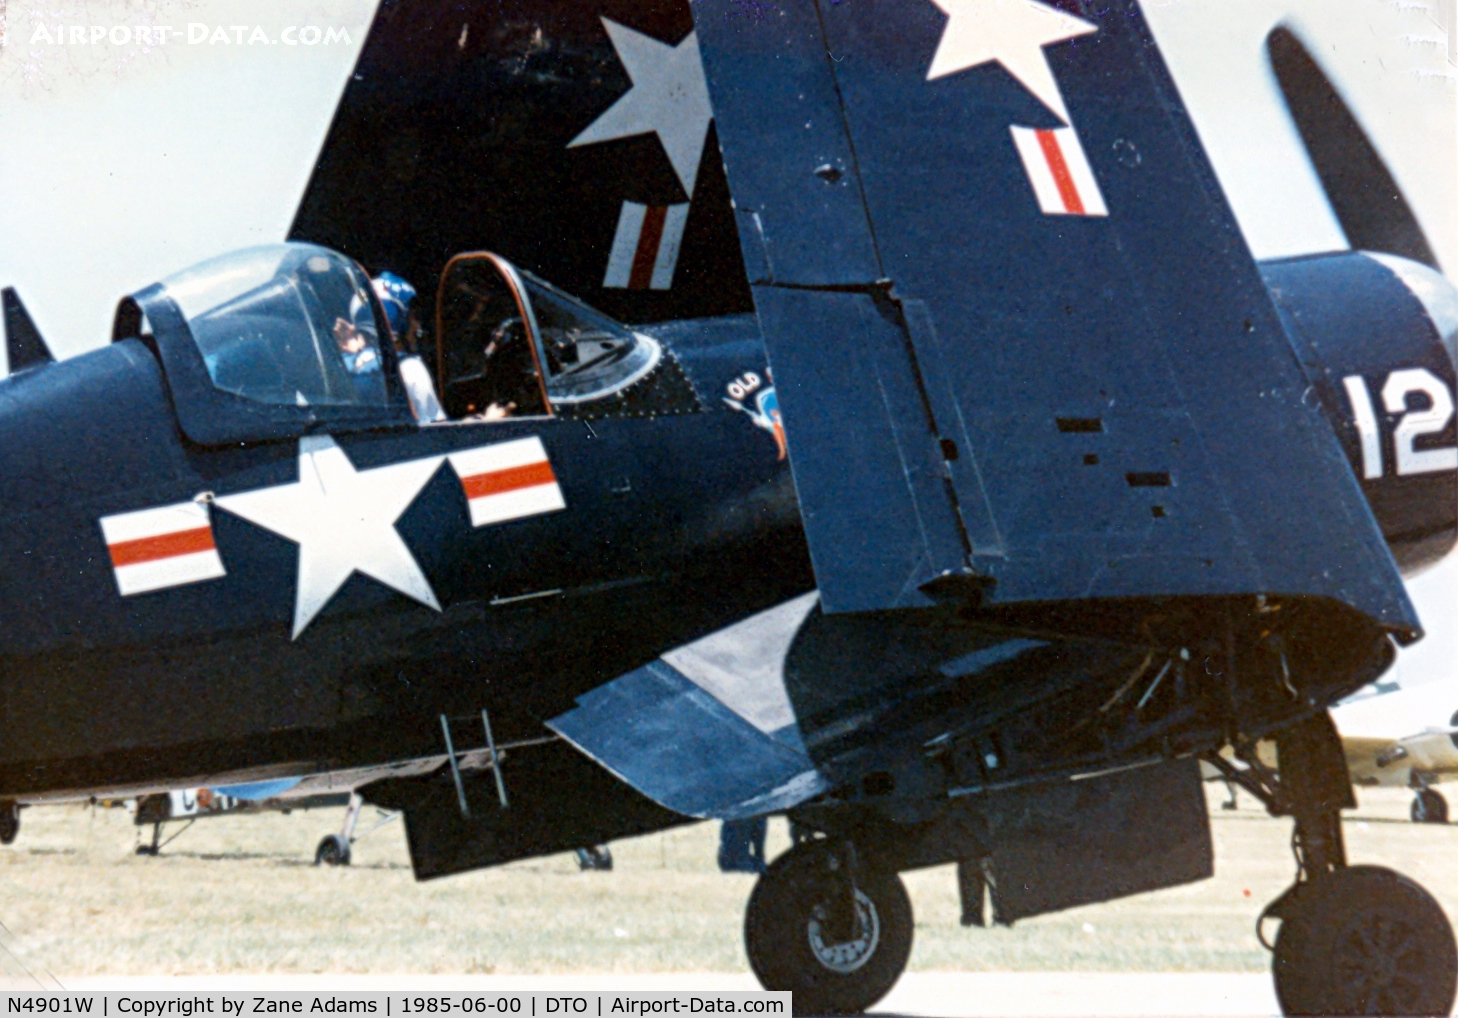 N4901W, 1951 Chance Vought F4U-5 C/N 124560, Corsair at CAF Denton Airshow